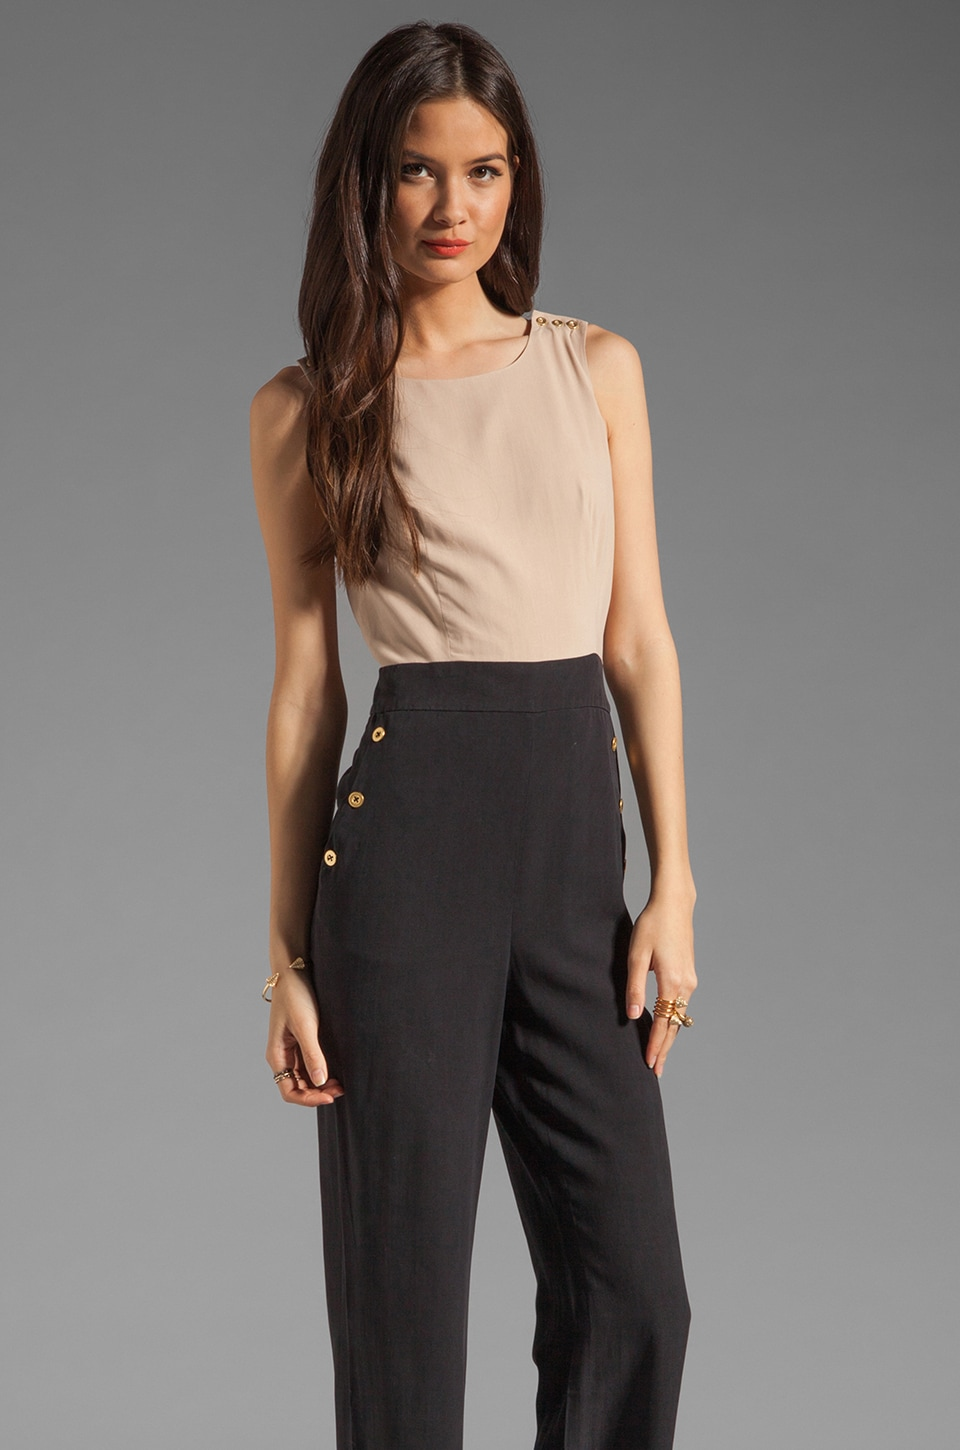 Alice by Temperley Long Elda Jumpsuit in Nude/Black